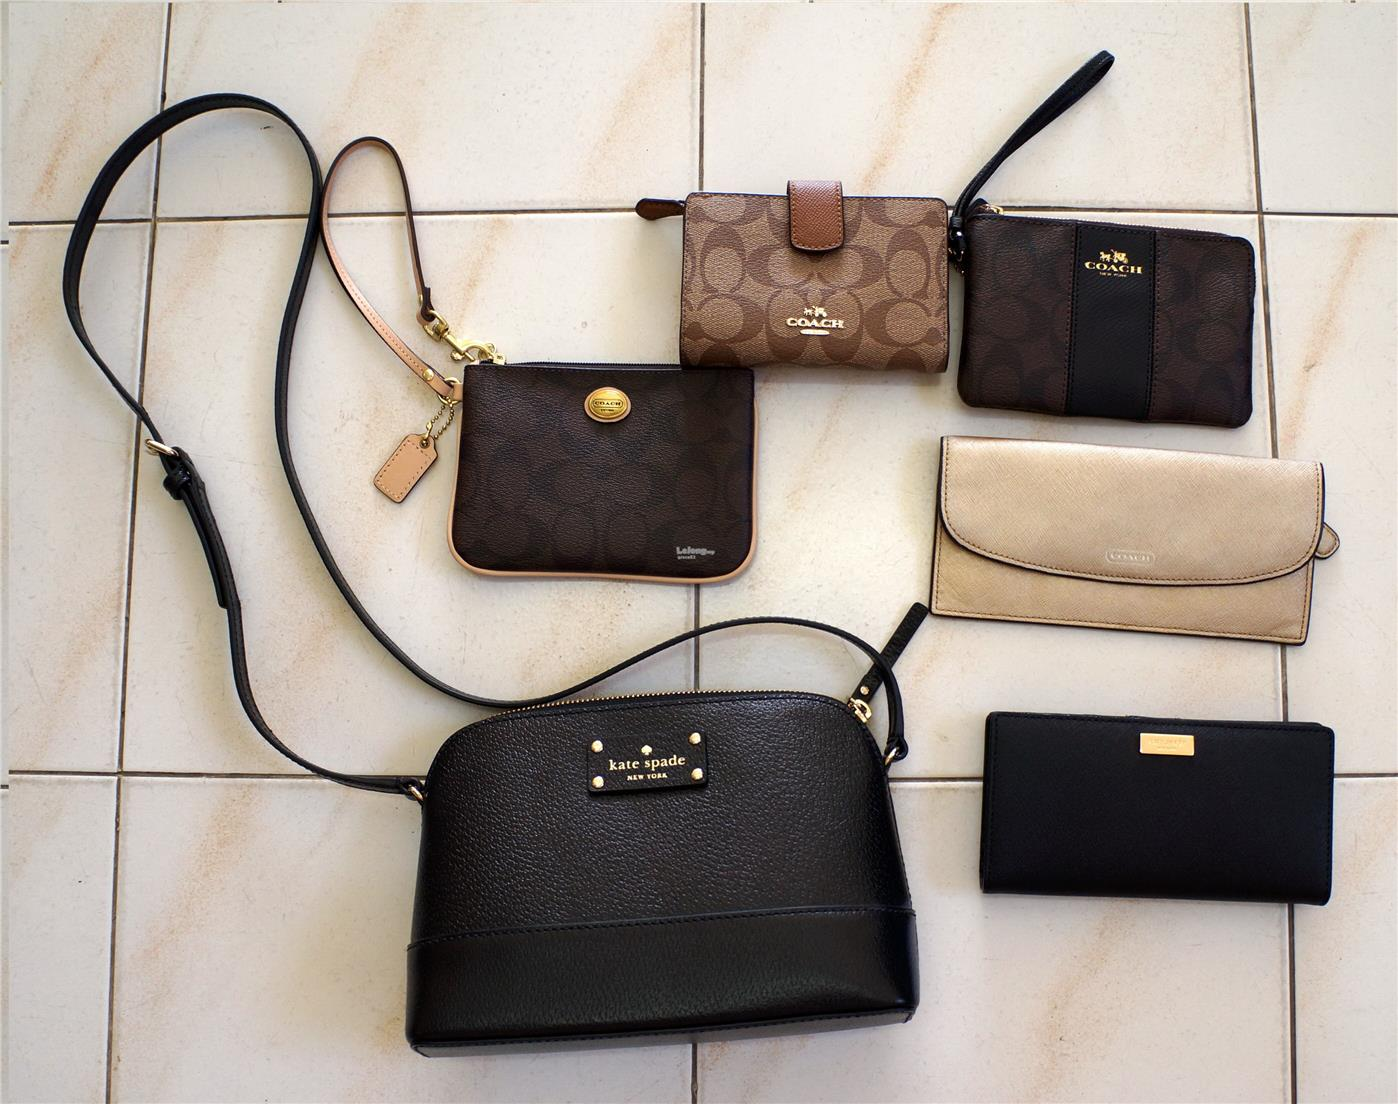 Branded Usa Coach Kate Spade Wallet And Bags